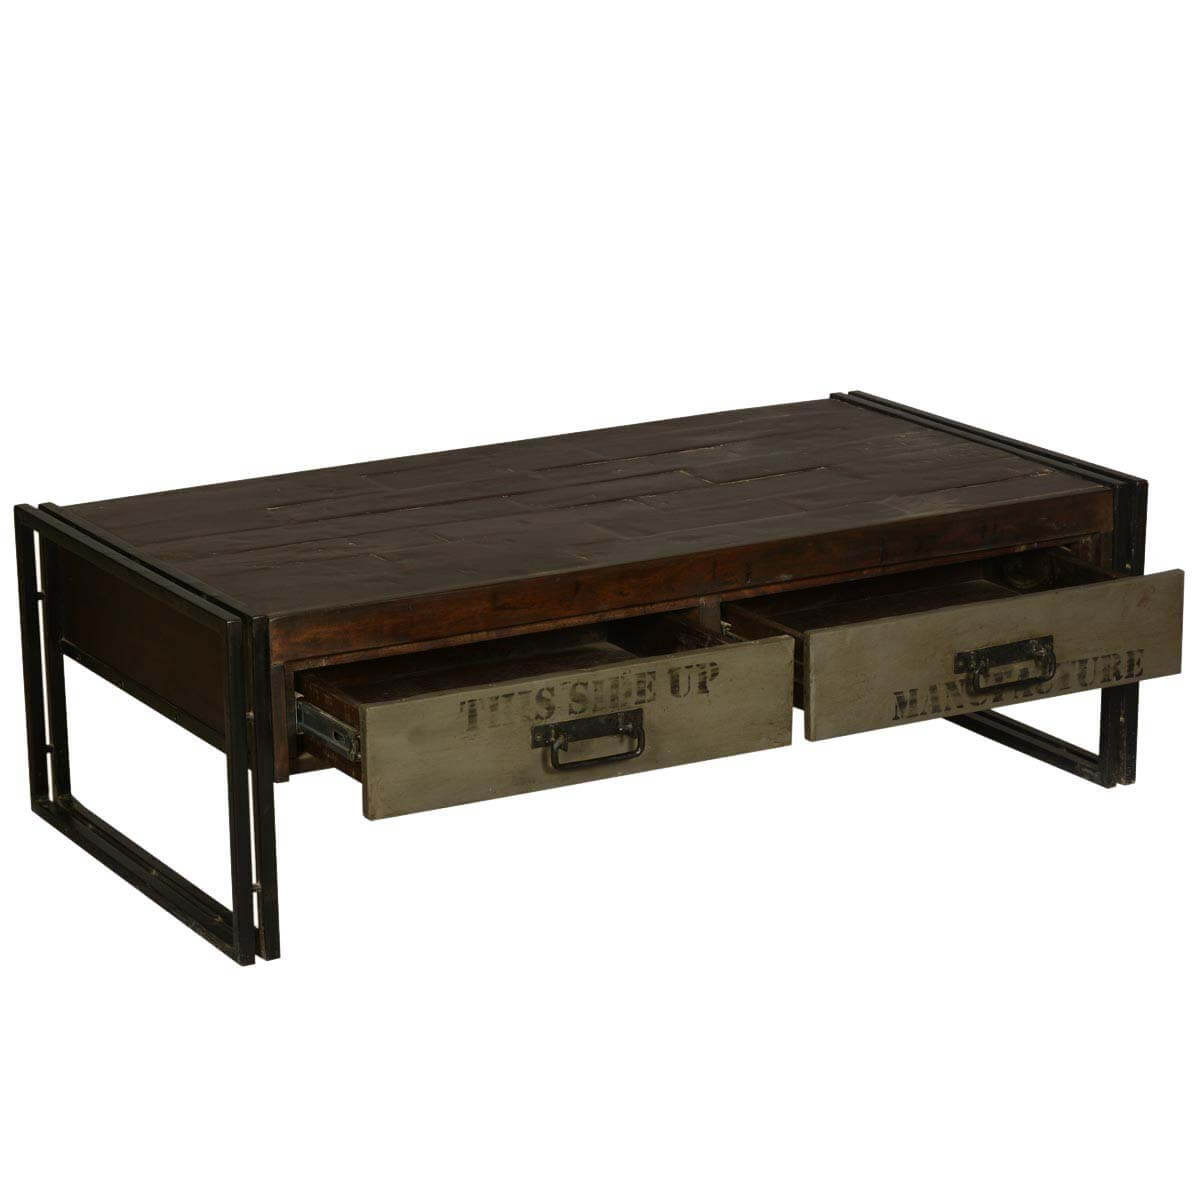 Philadelphia modern rustic reclaimed wood metal coffee table for Coffee table